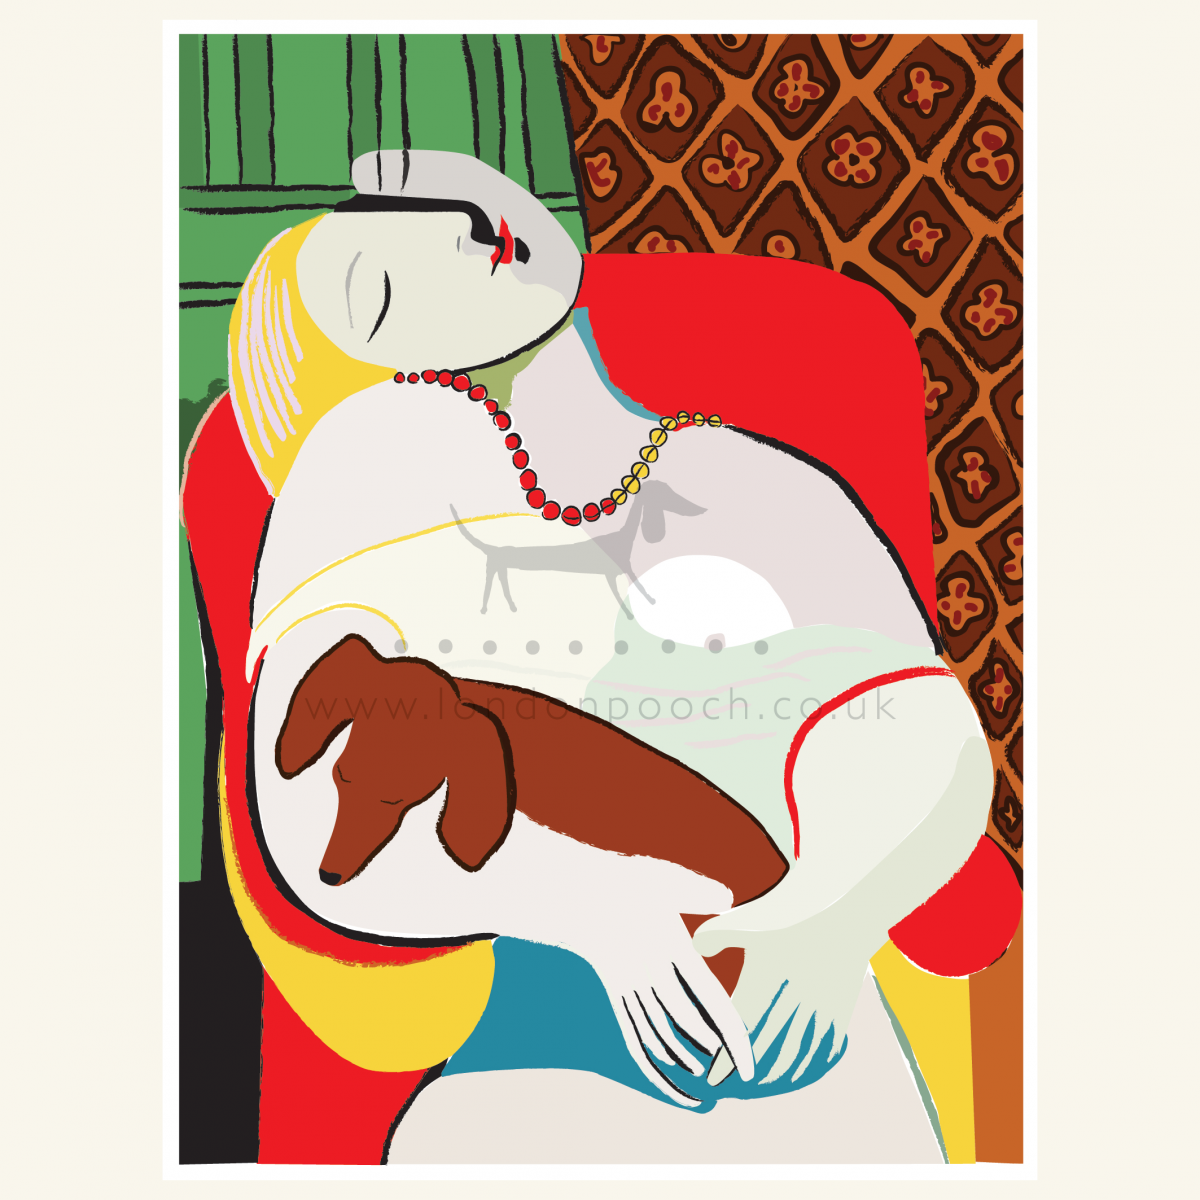 Picasso Portrait with a small sausage dog on her knee. Humorous Dachshund Art